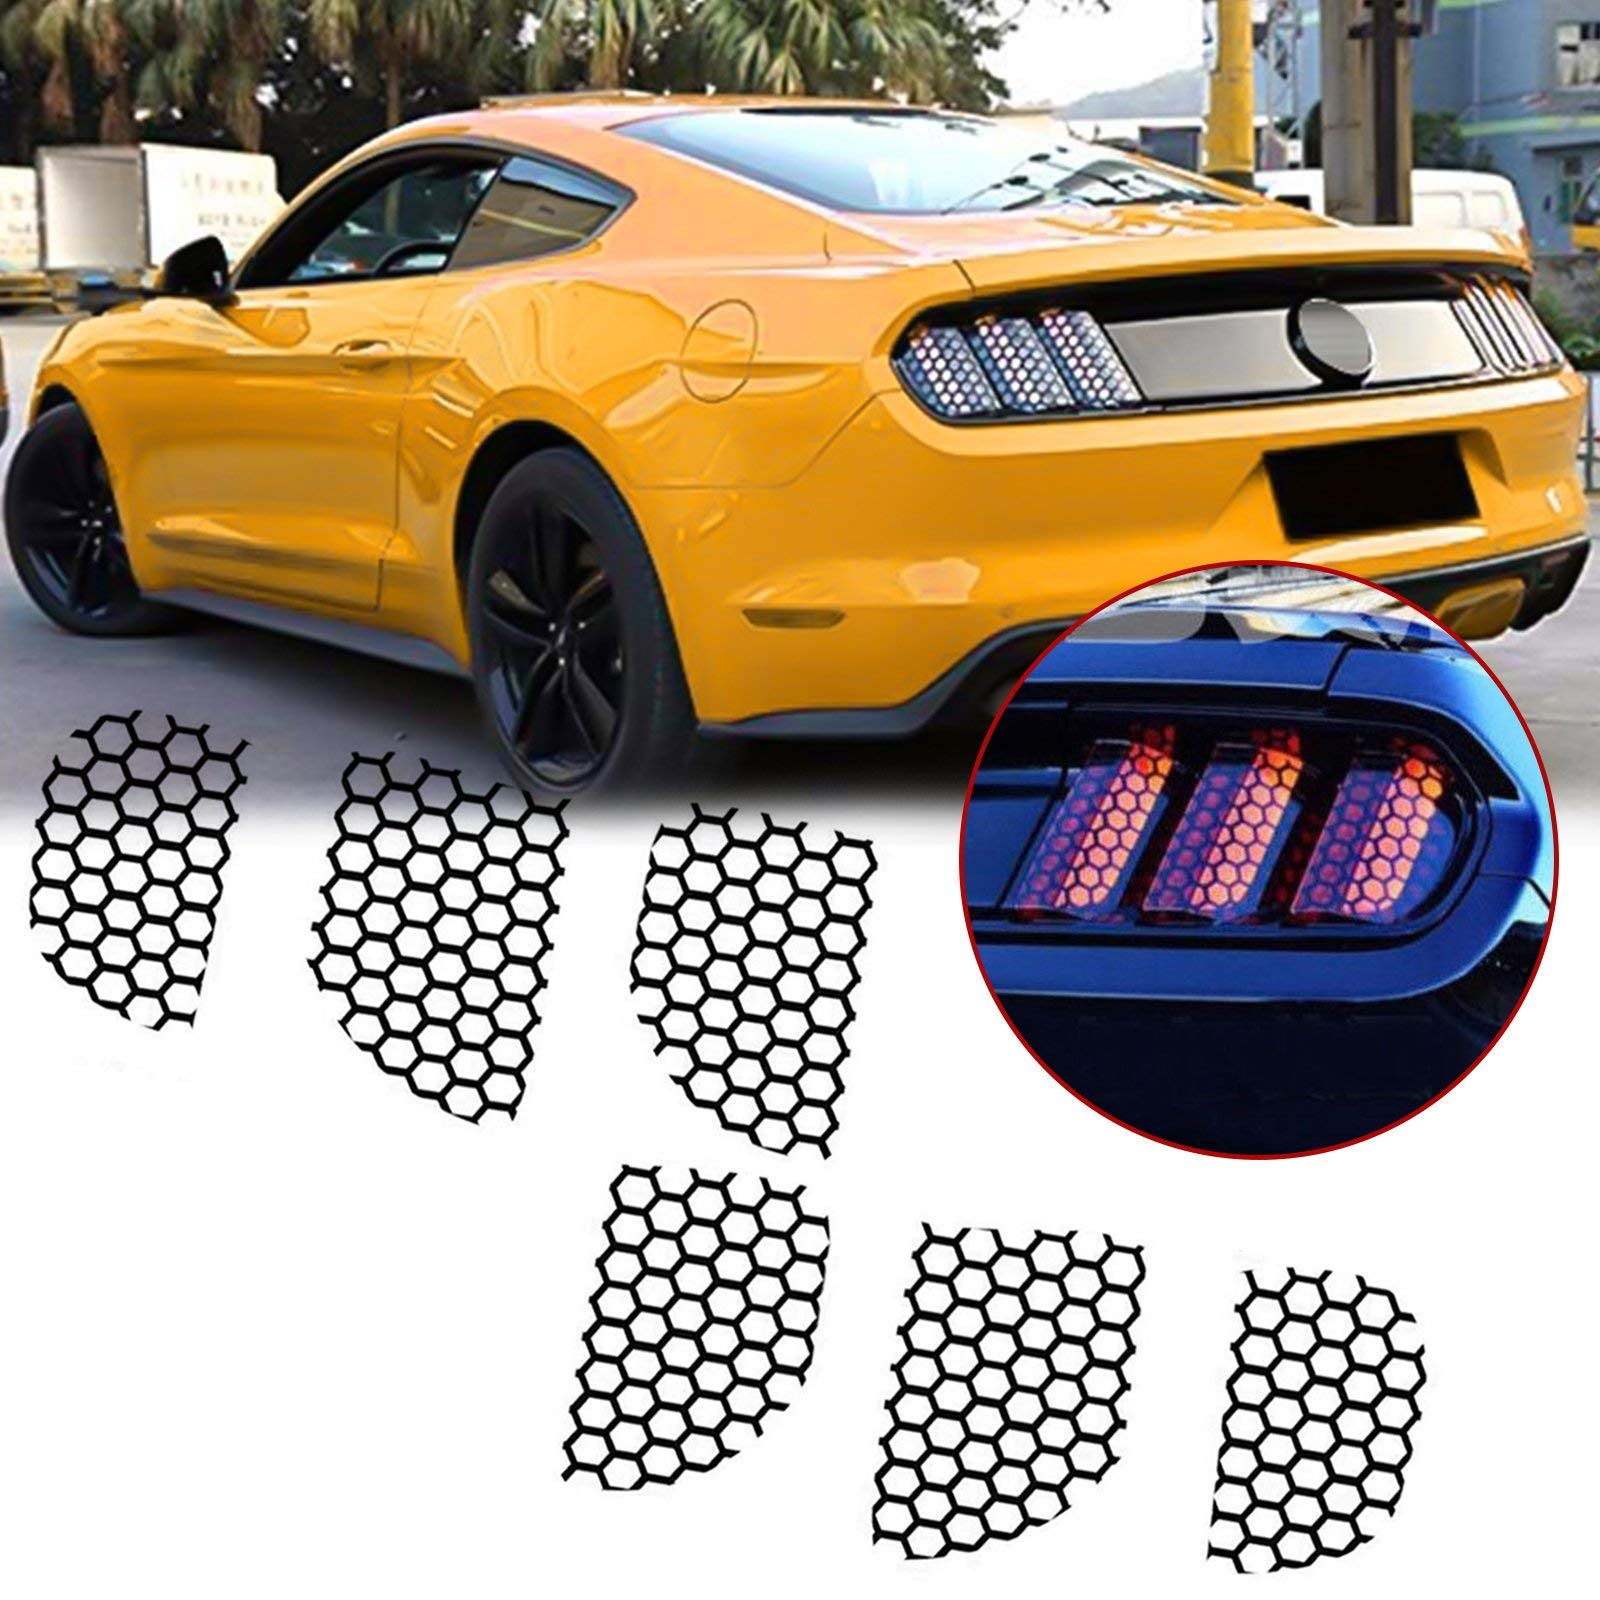 X AUTOHAUX 1 Set Car Rear Tail Light Lamp Stickers Honeycomb Type Decal Yellow for Ford Mustang 2015-2017